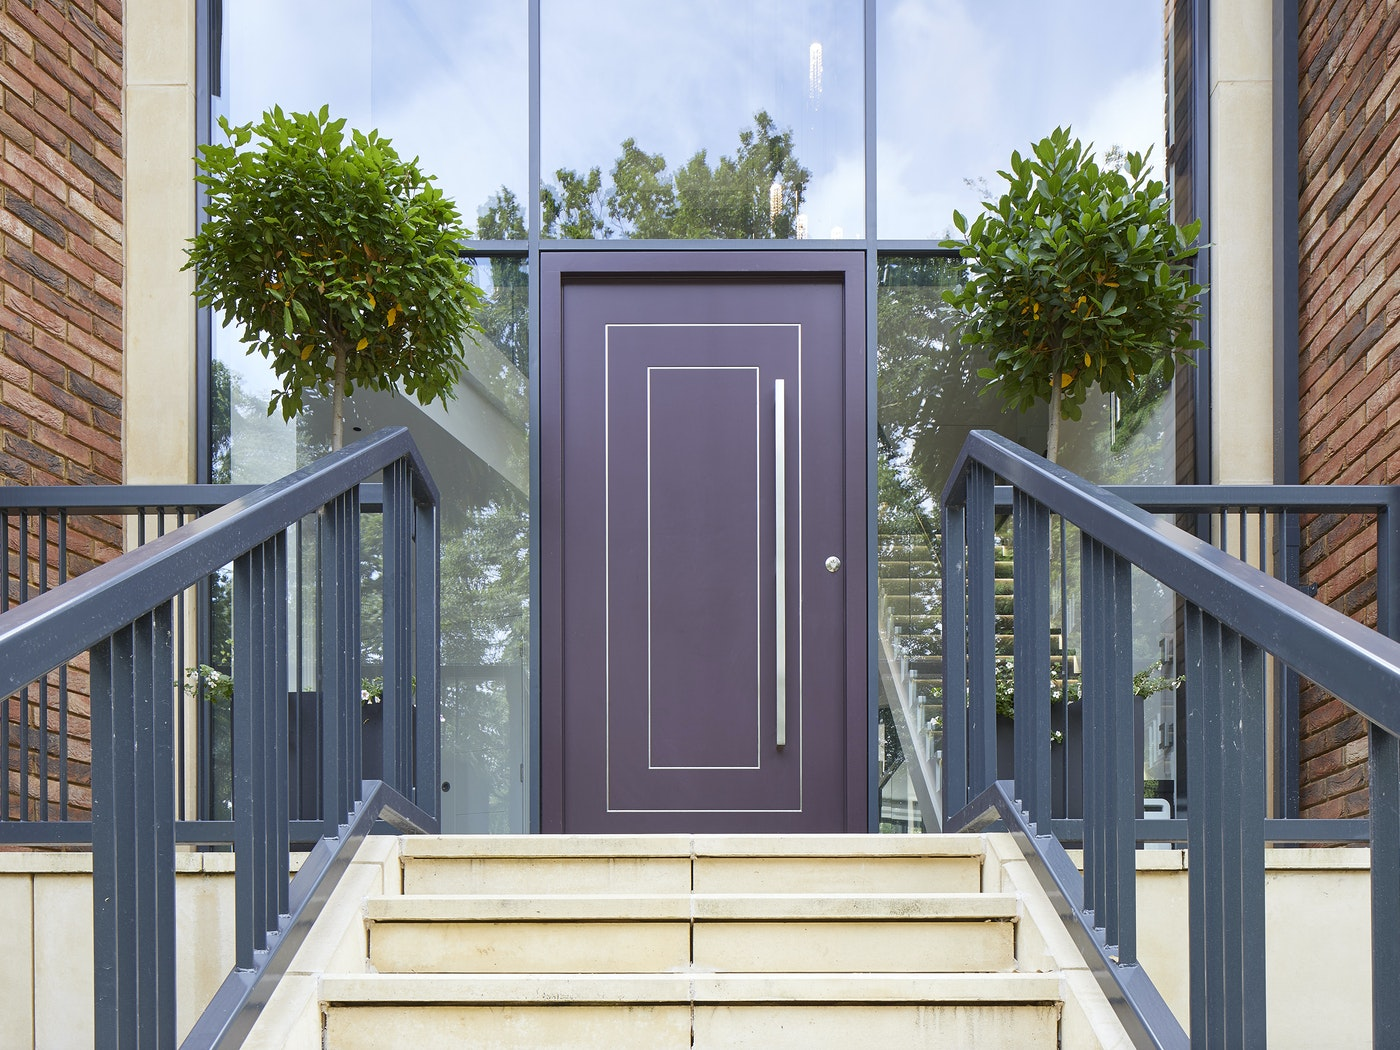 The black aluminium walling, red brick and beige tones of the exterior balance beautifully with the purple door